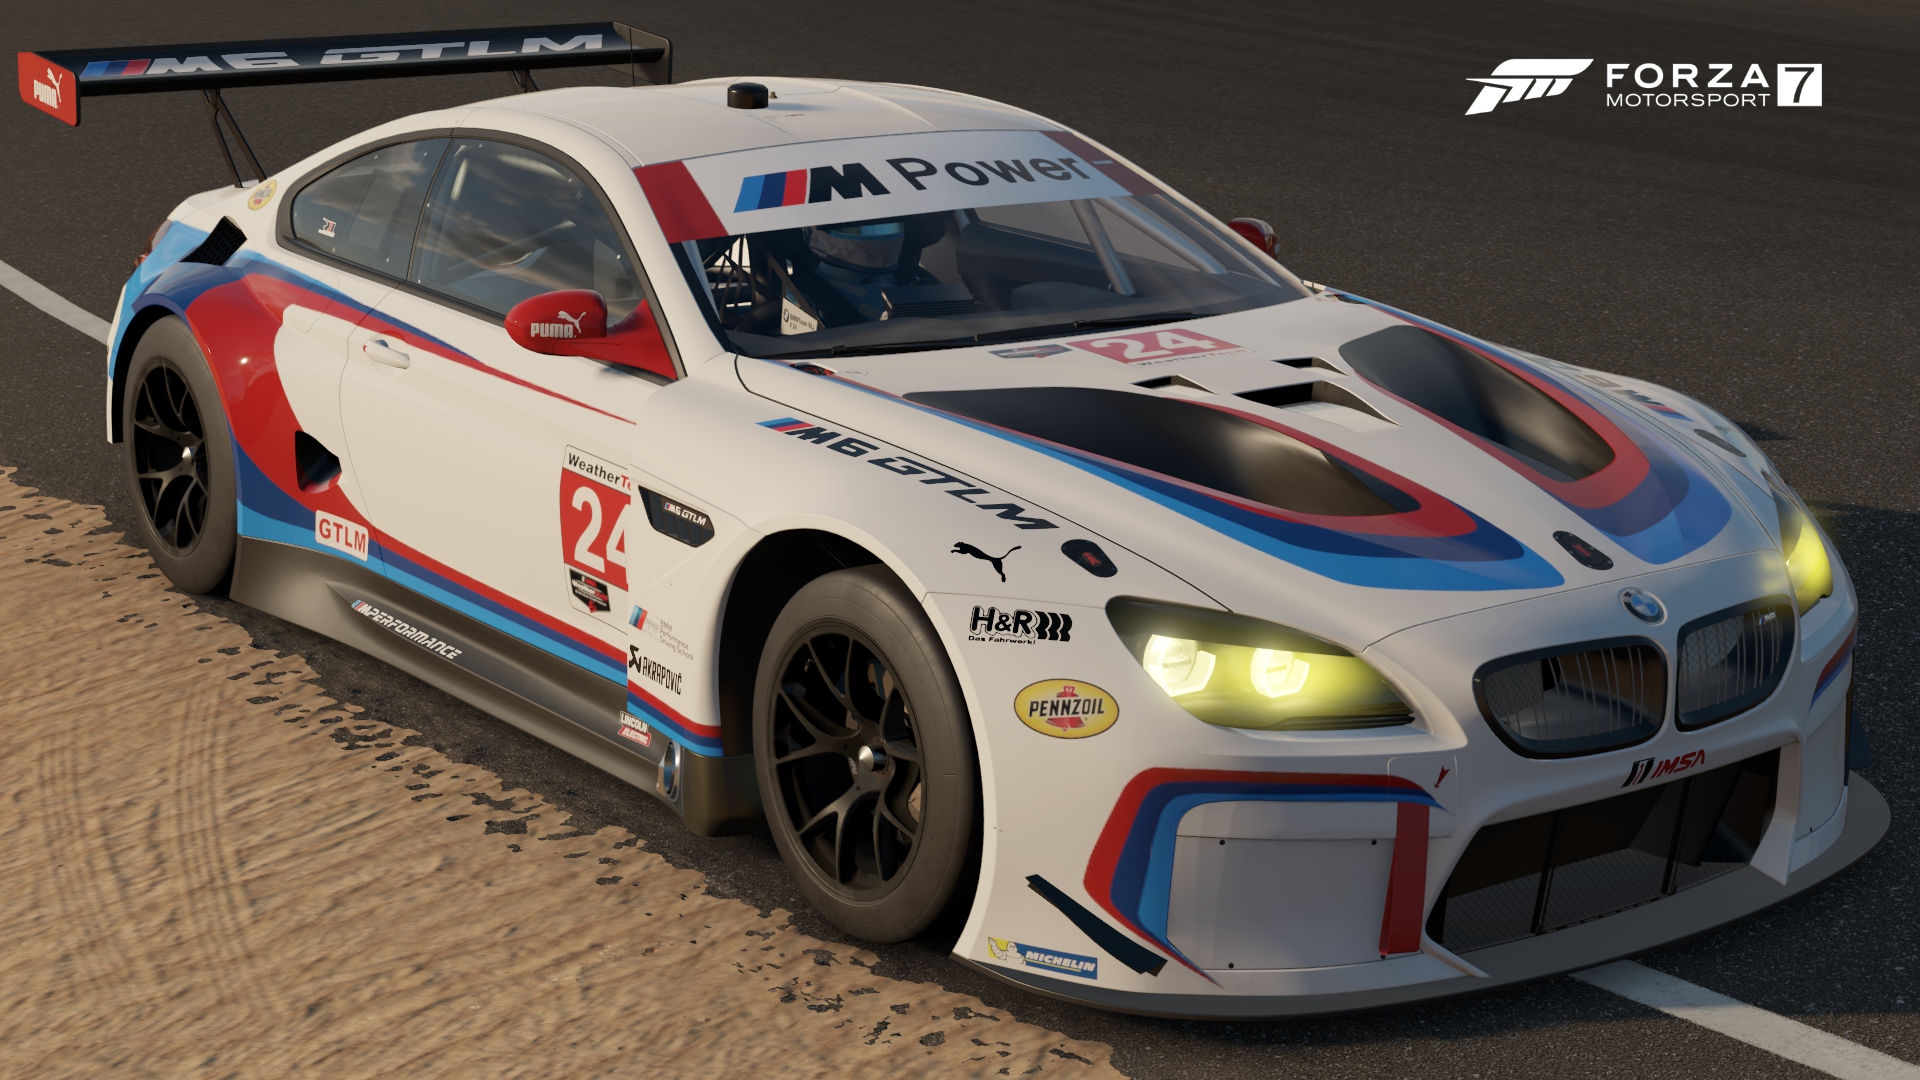 The 2017 BMW 24 Team RLL M6 GTLM In Forza Motorsport 7